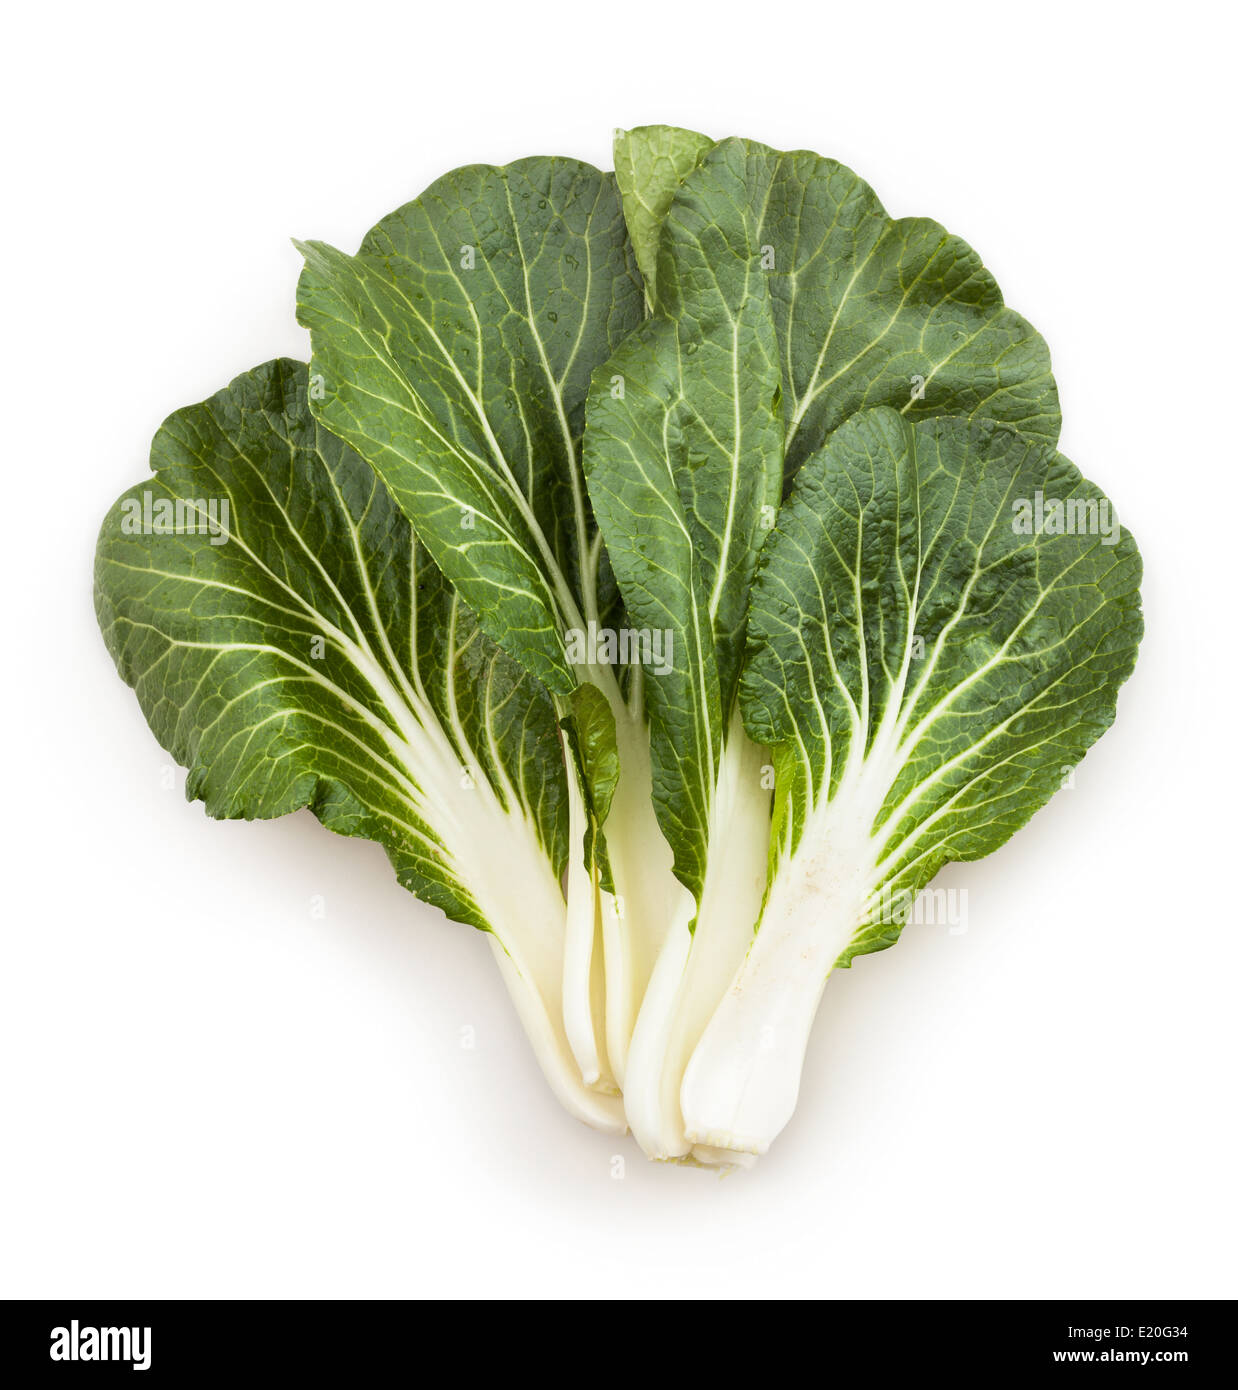 bok choy chinese cabbage leaves isolated - Stock Image